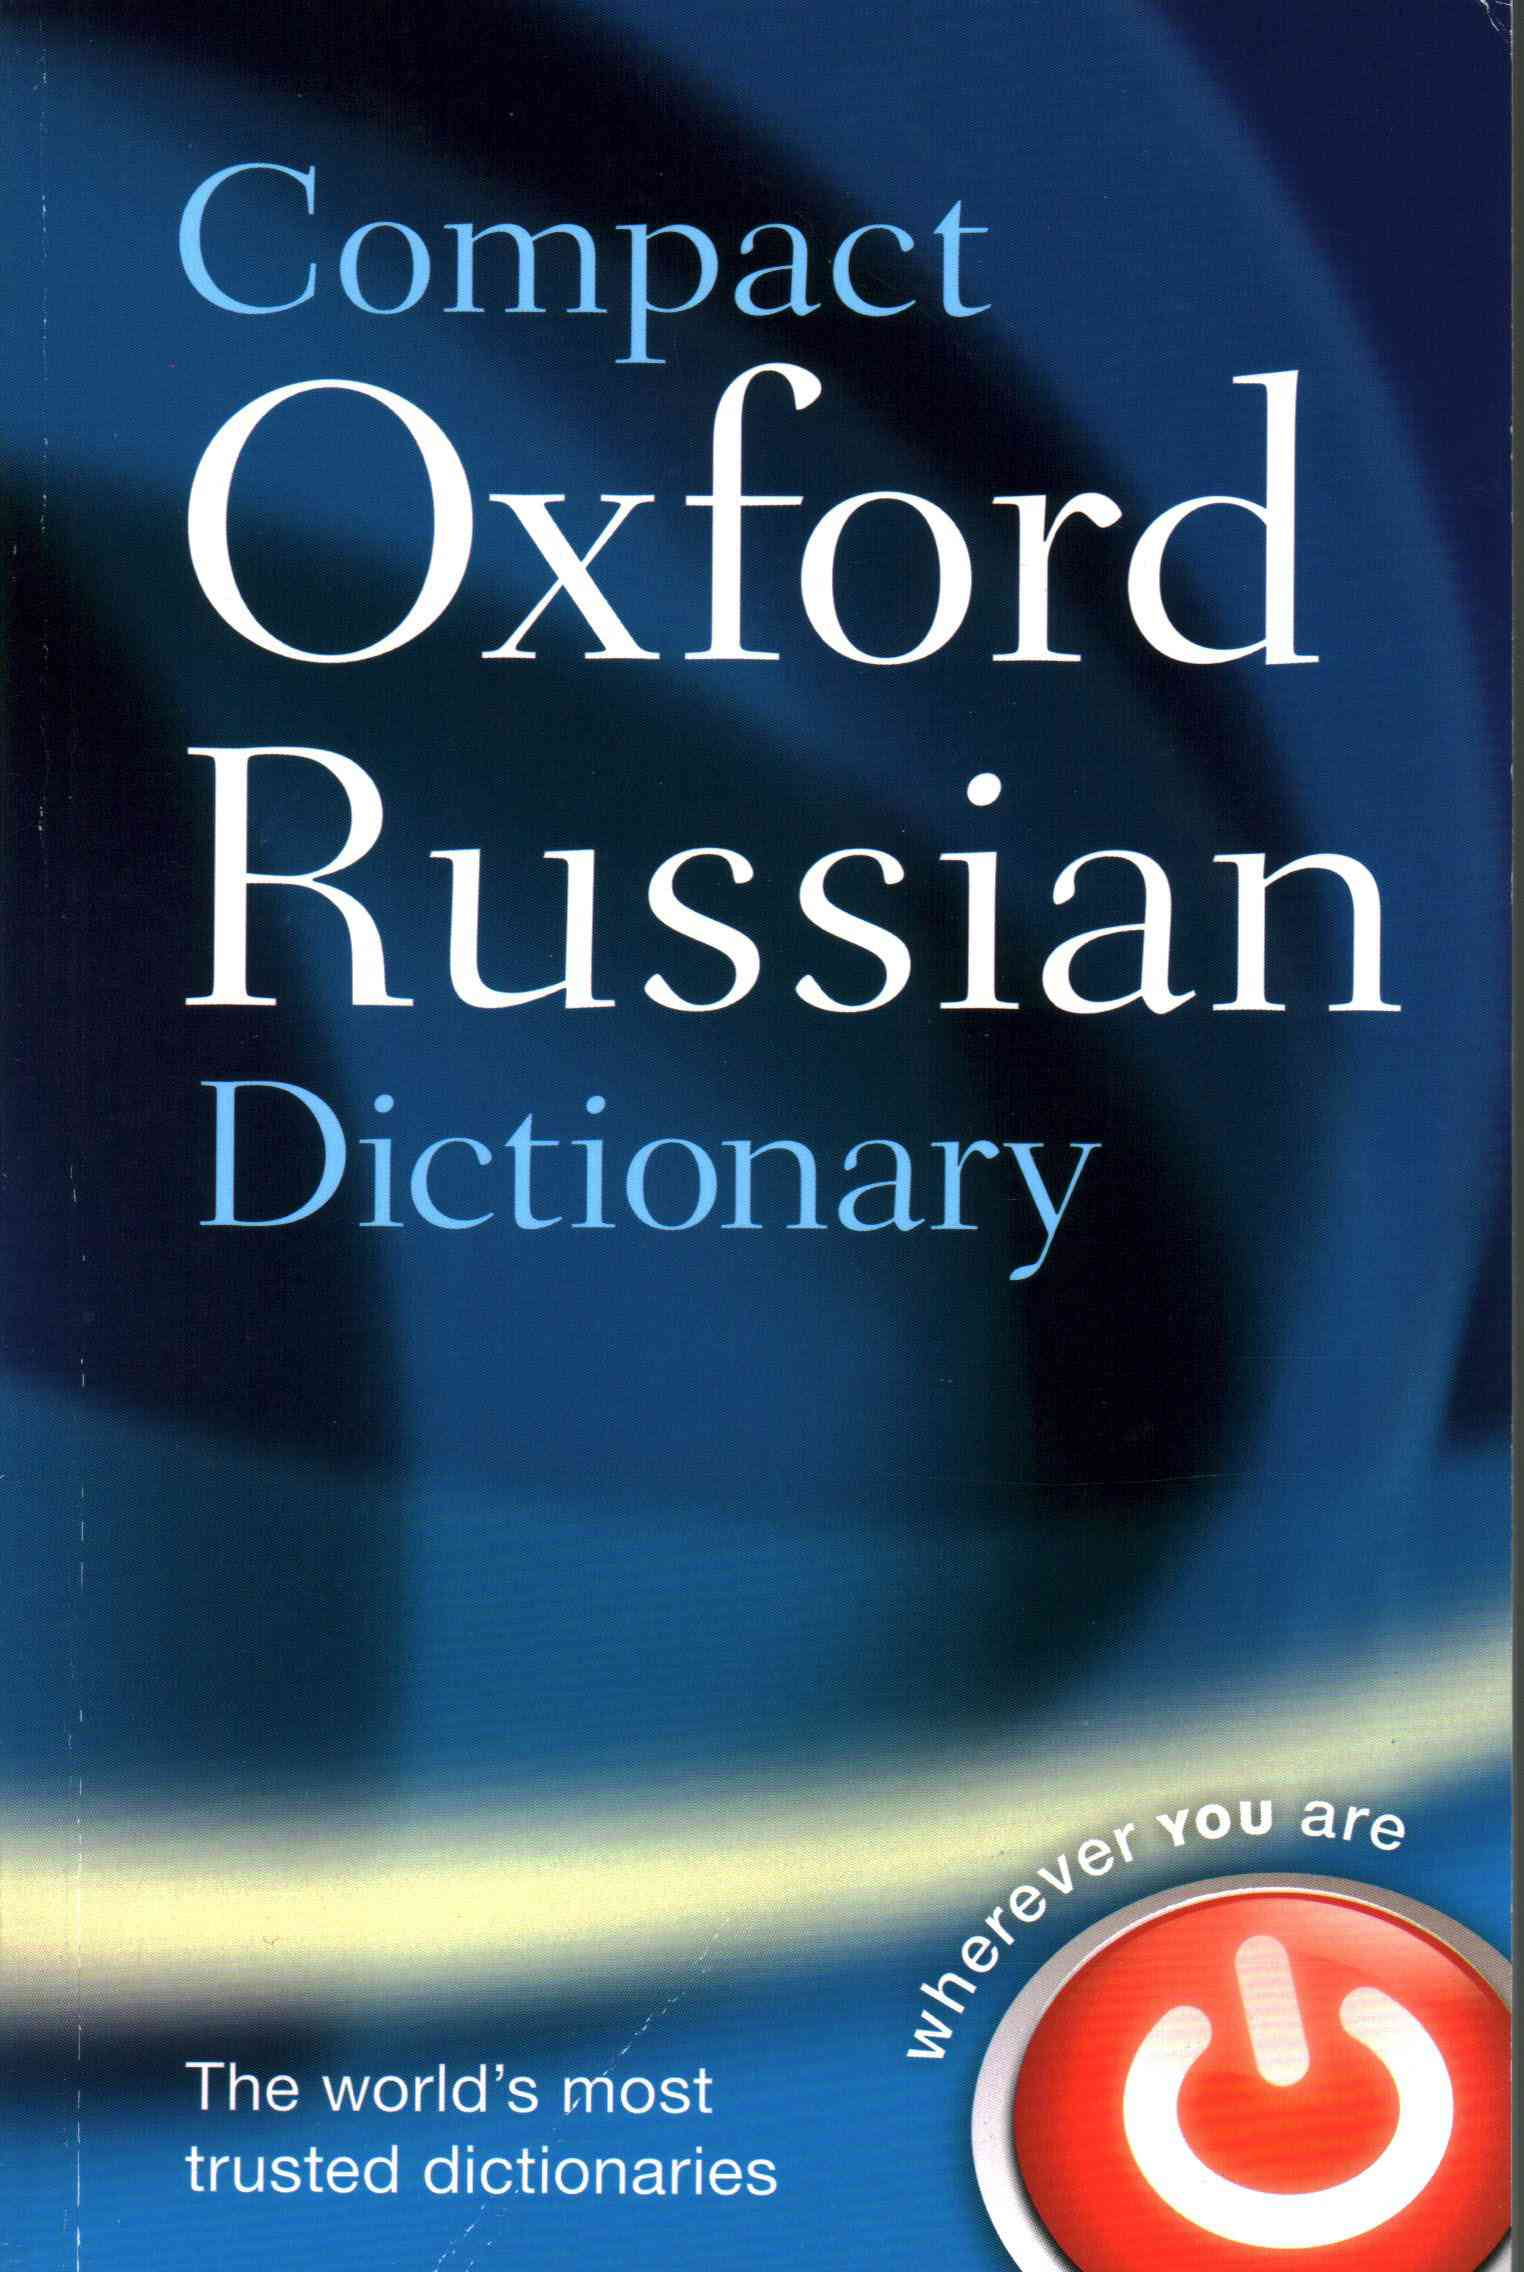 Compact Oxford Russian Dictionary By Oxford University Press (COR)